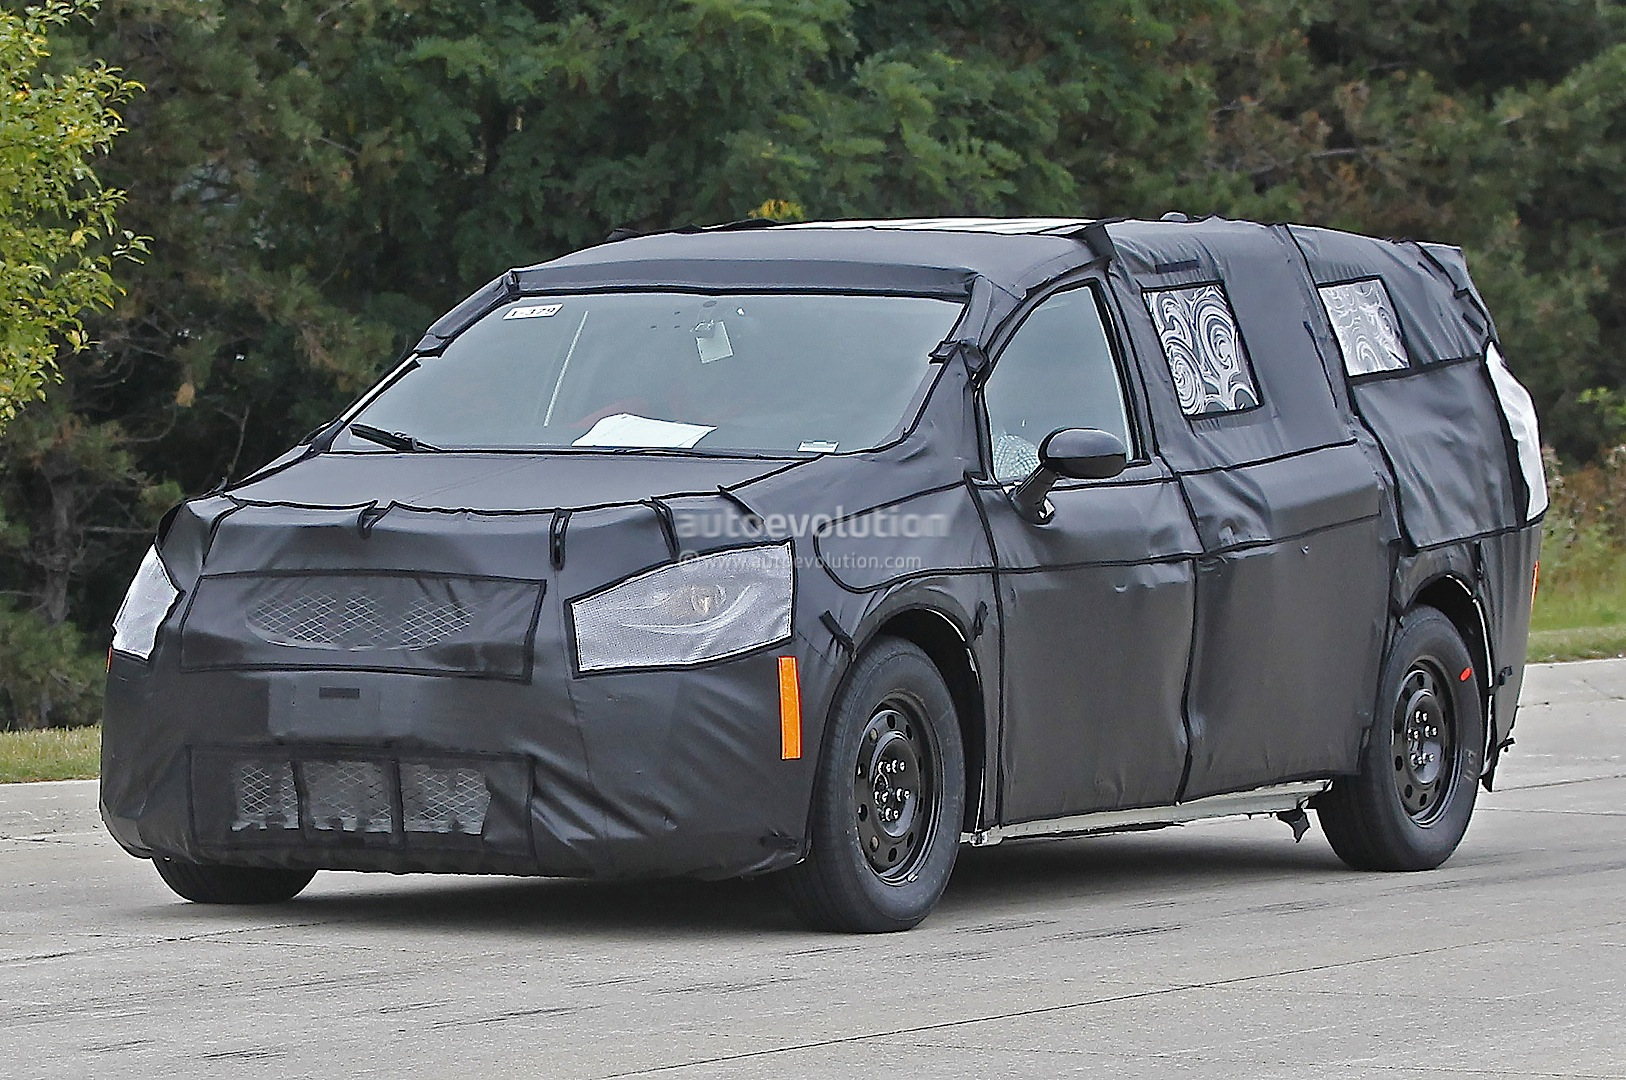 2017 Chrysler Town & Country Spied Up Close and Personal - autoevolution